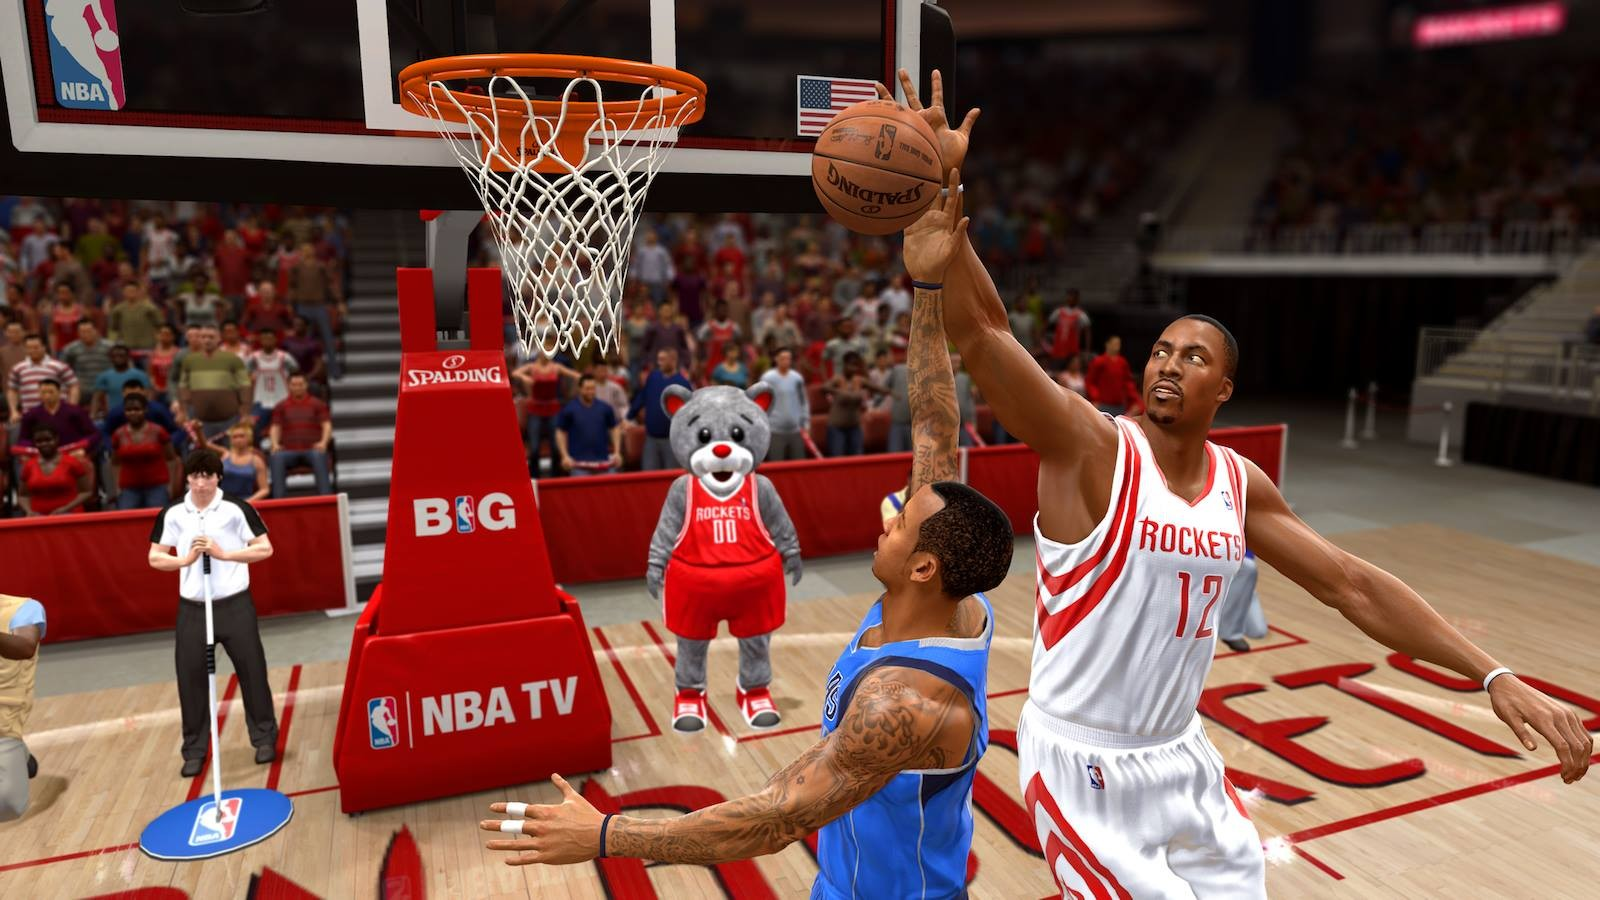 NBA LIVE 2015 For PC Full Game Free Download